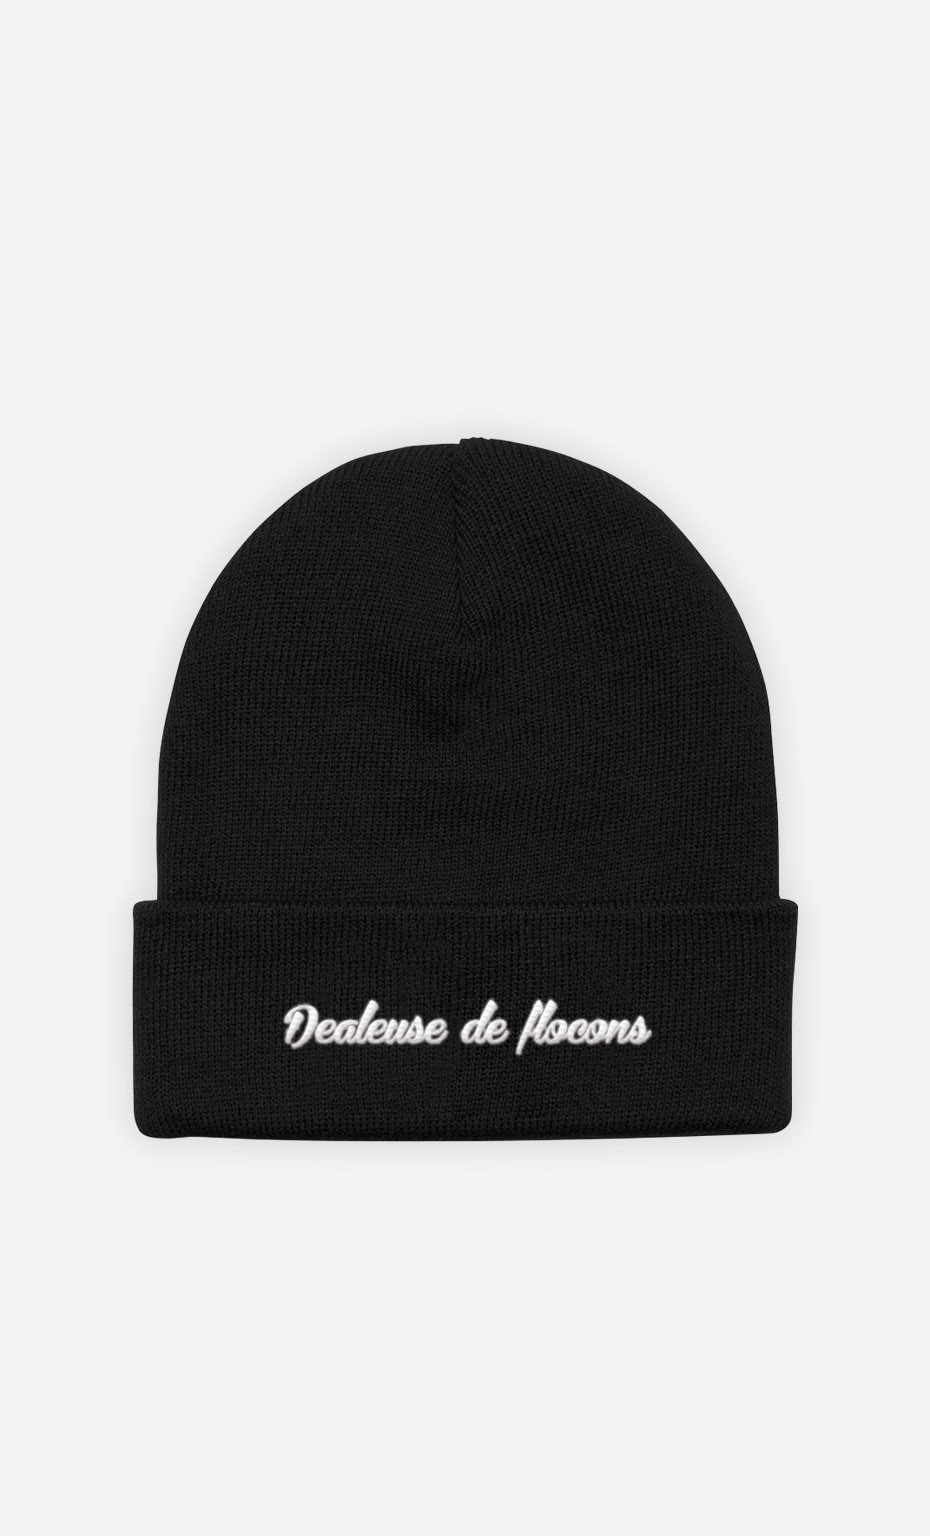 Bonnet Dealeuse de Flocons